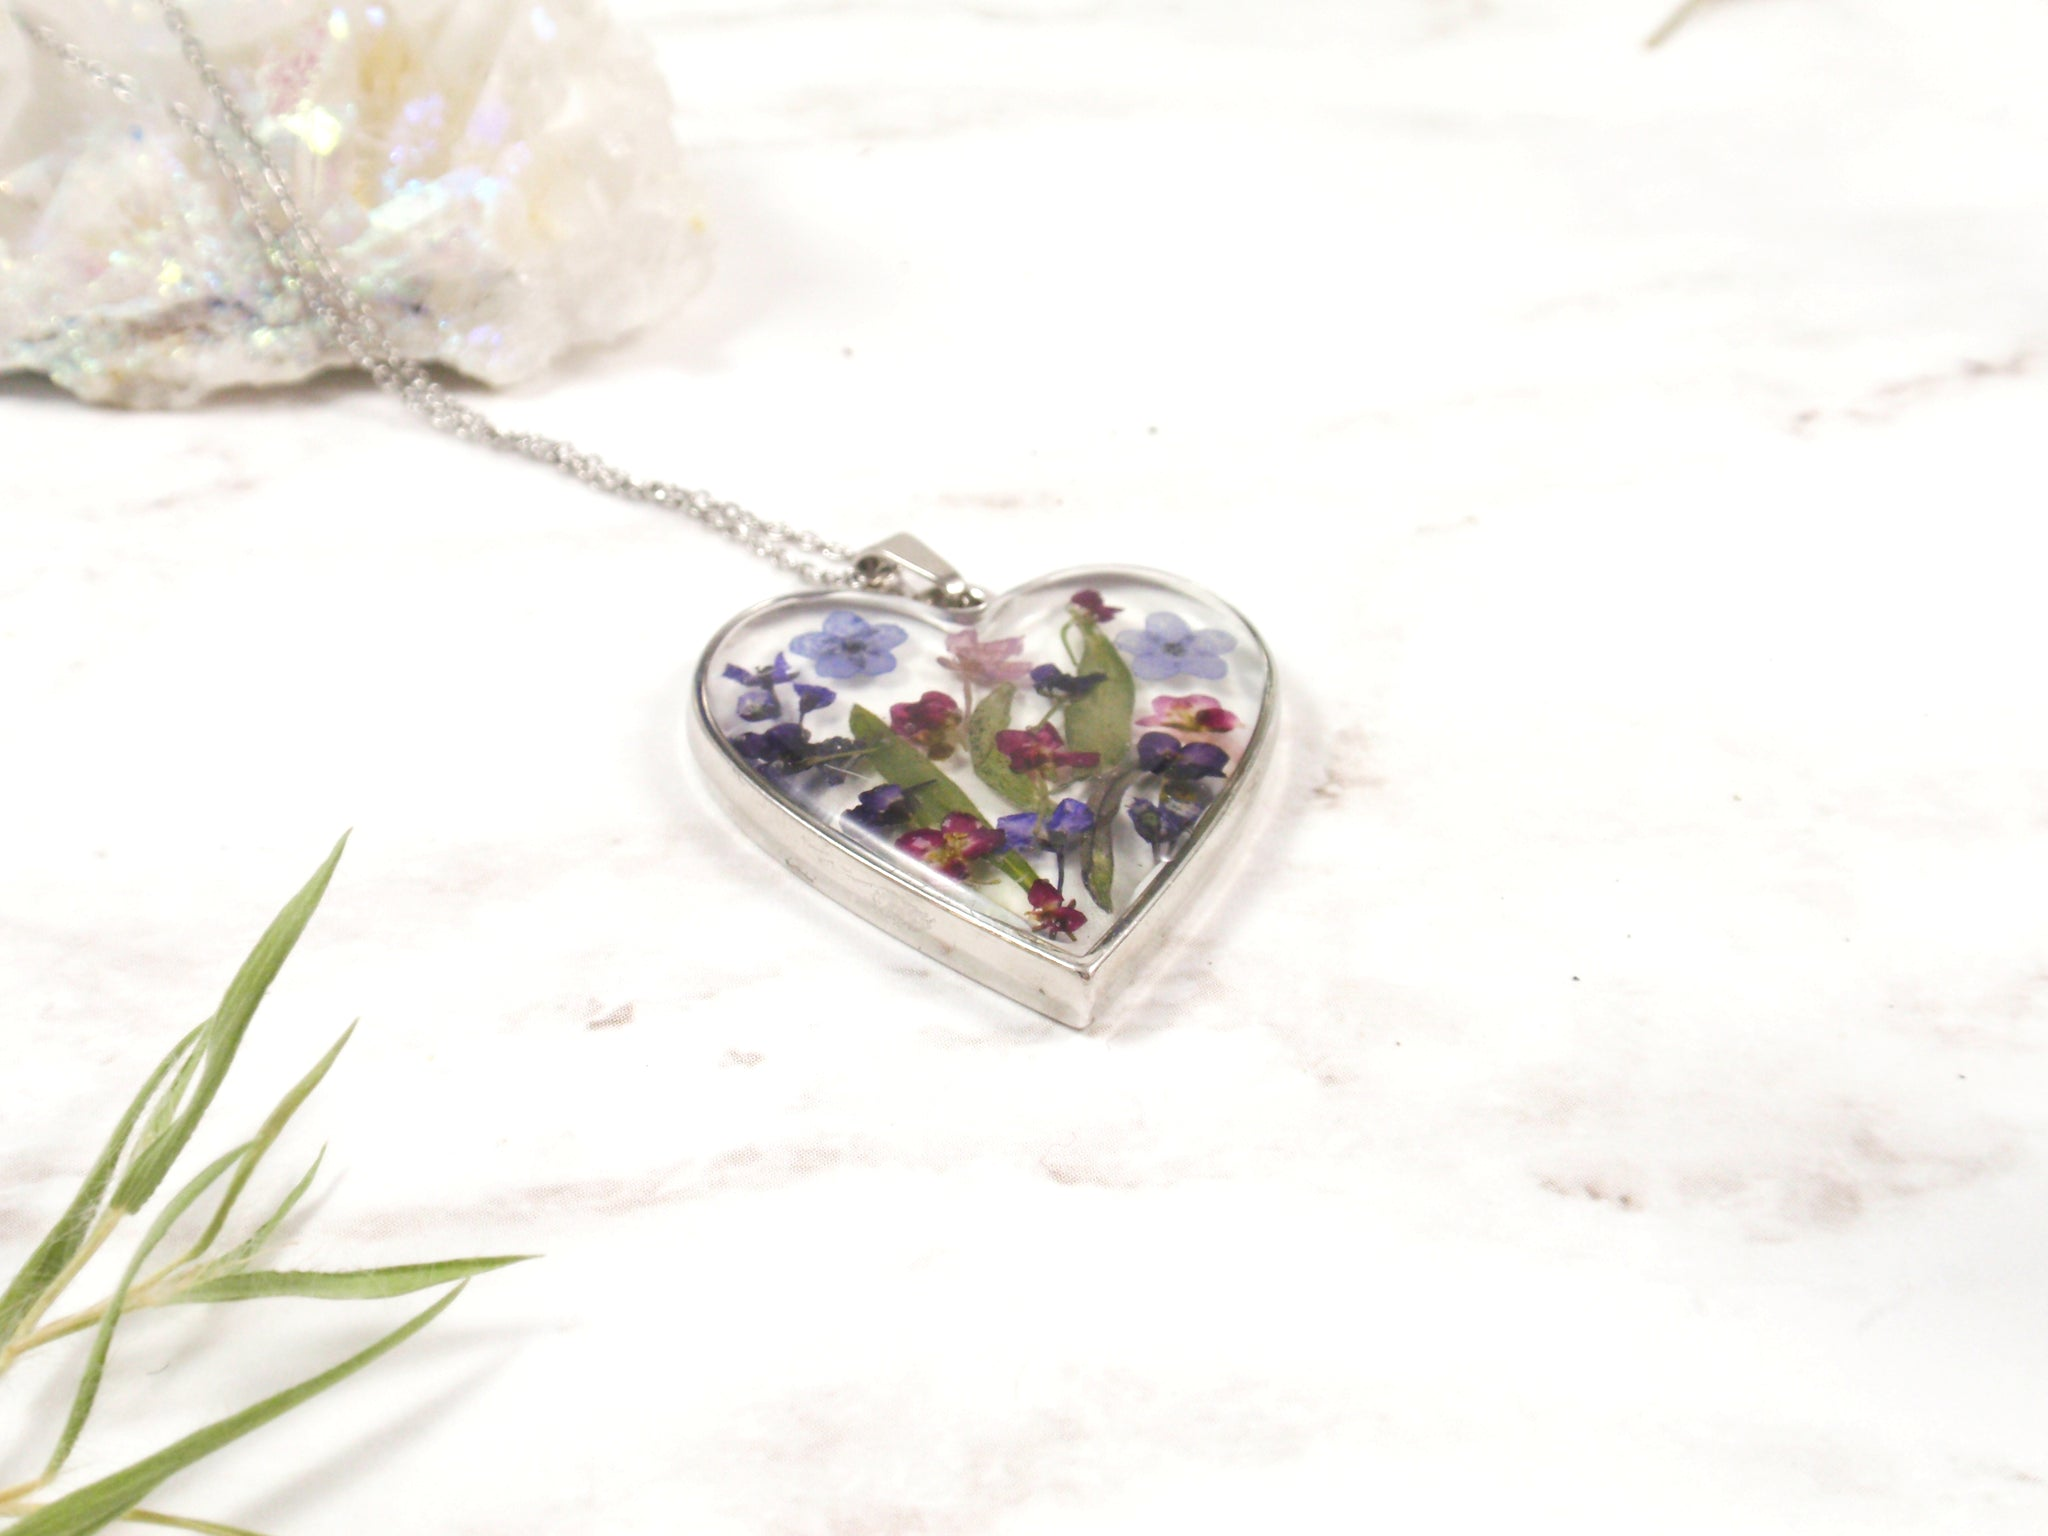 Heart shape resin necklace with real flowers